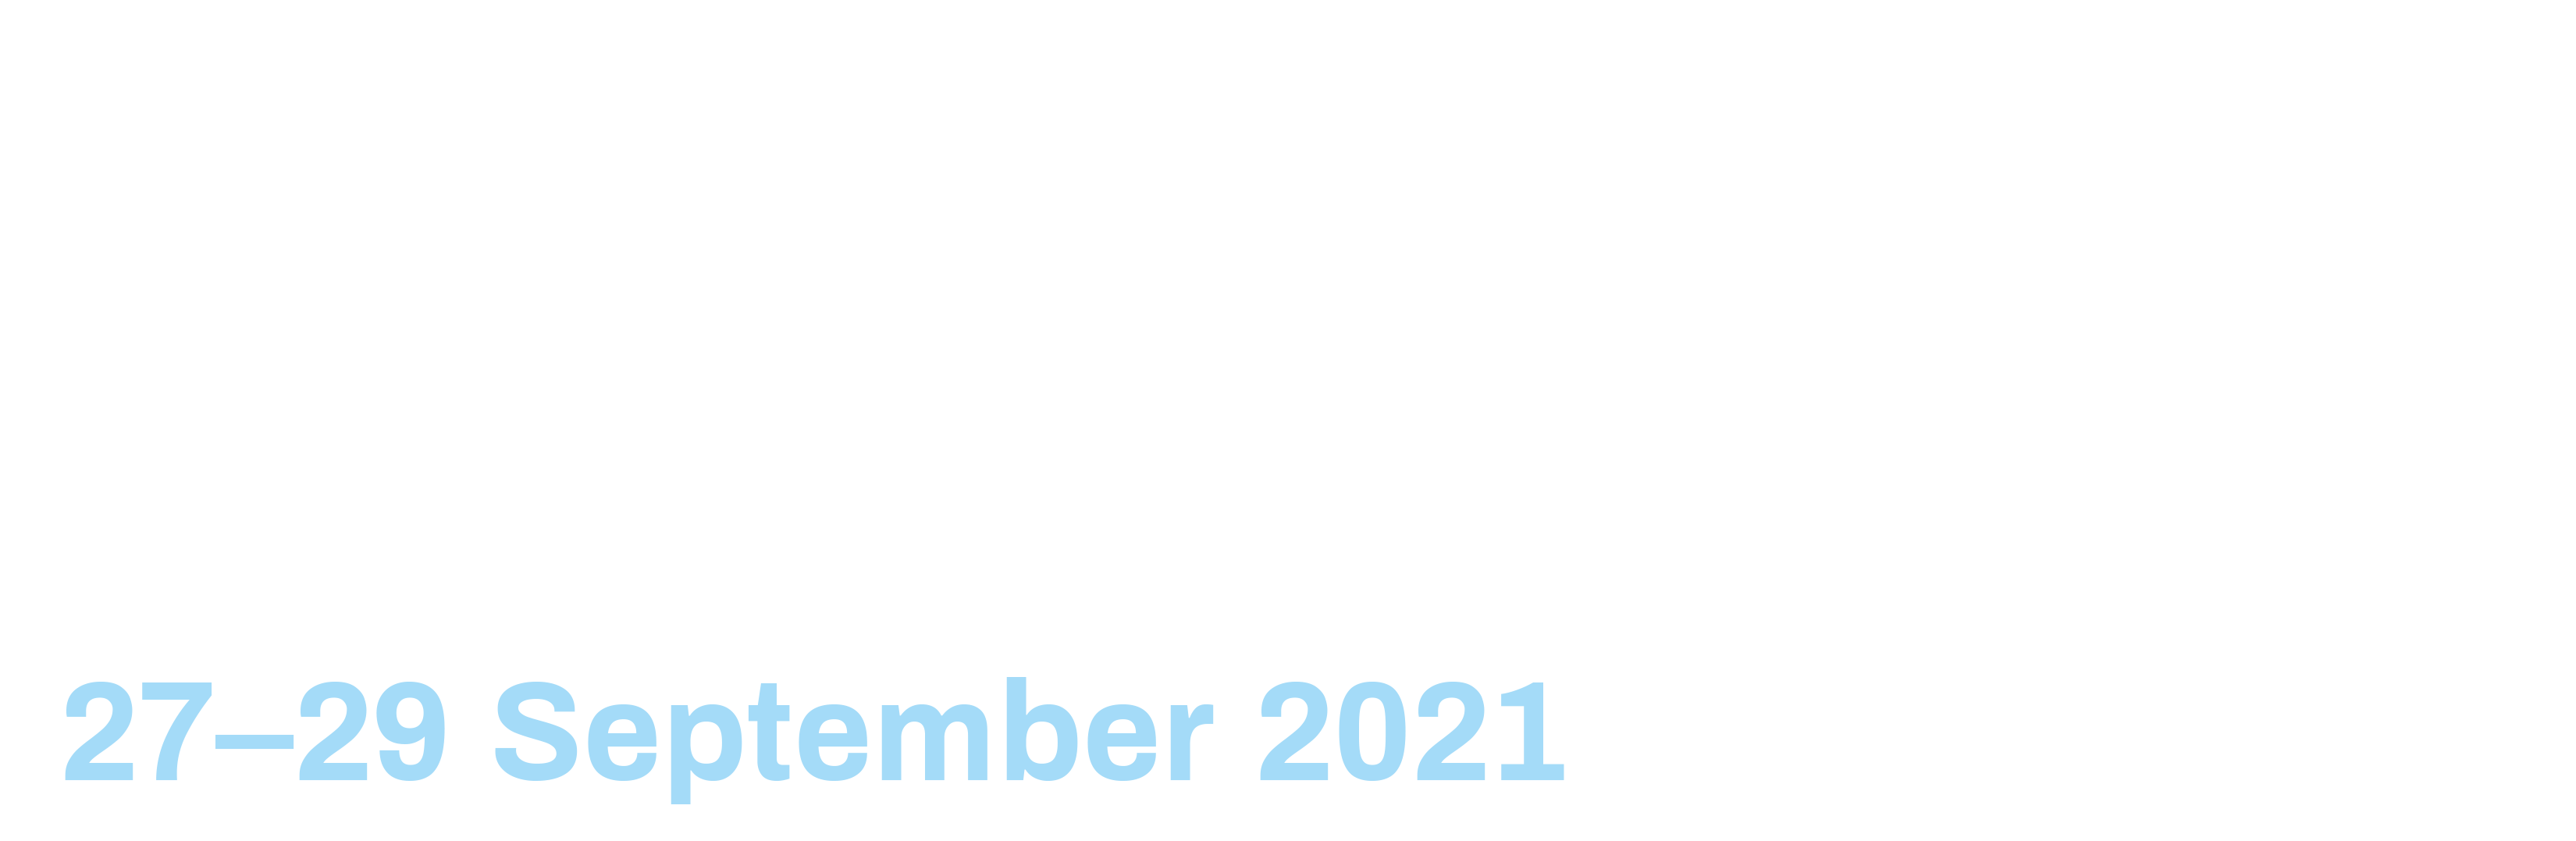 Fundraising Convention 2021